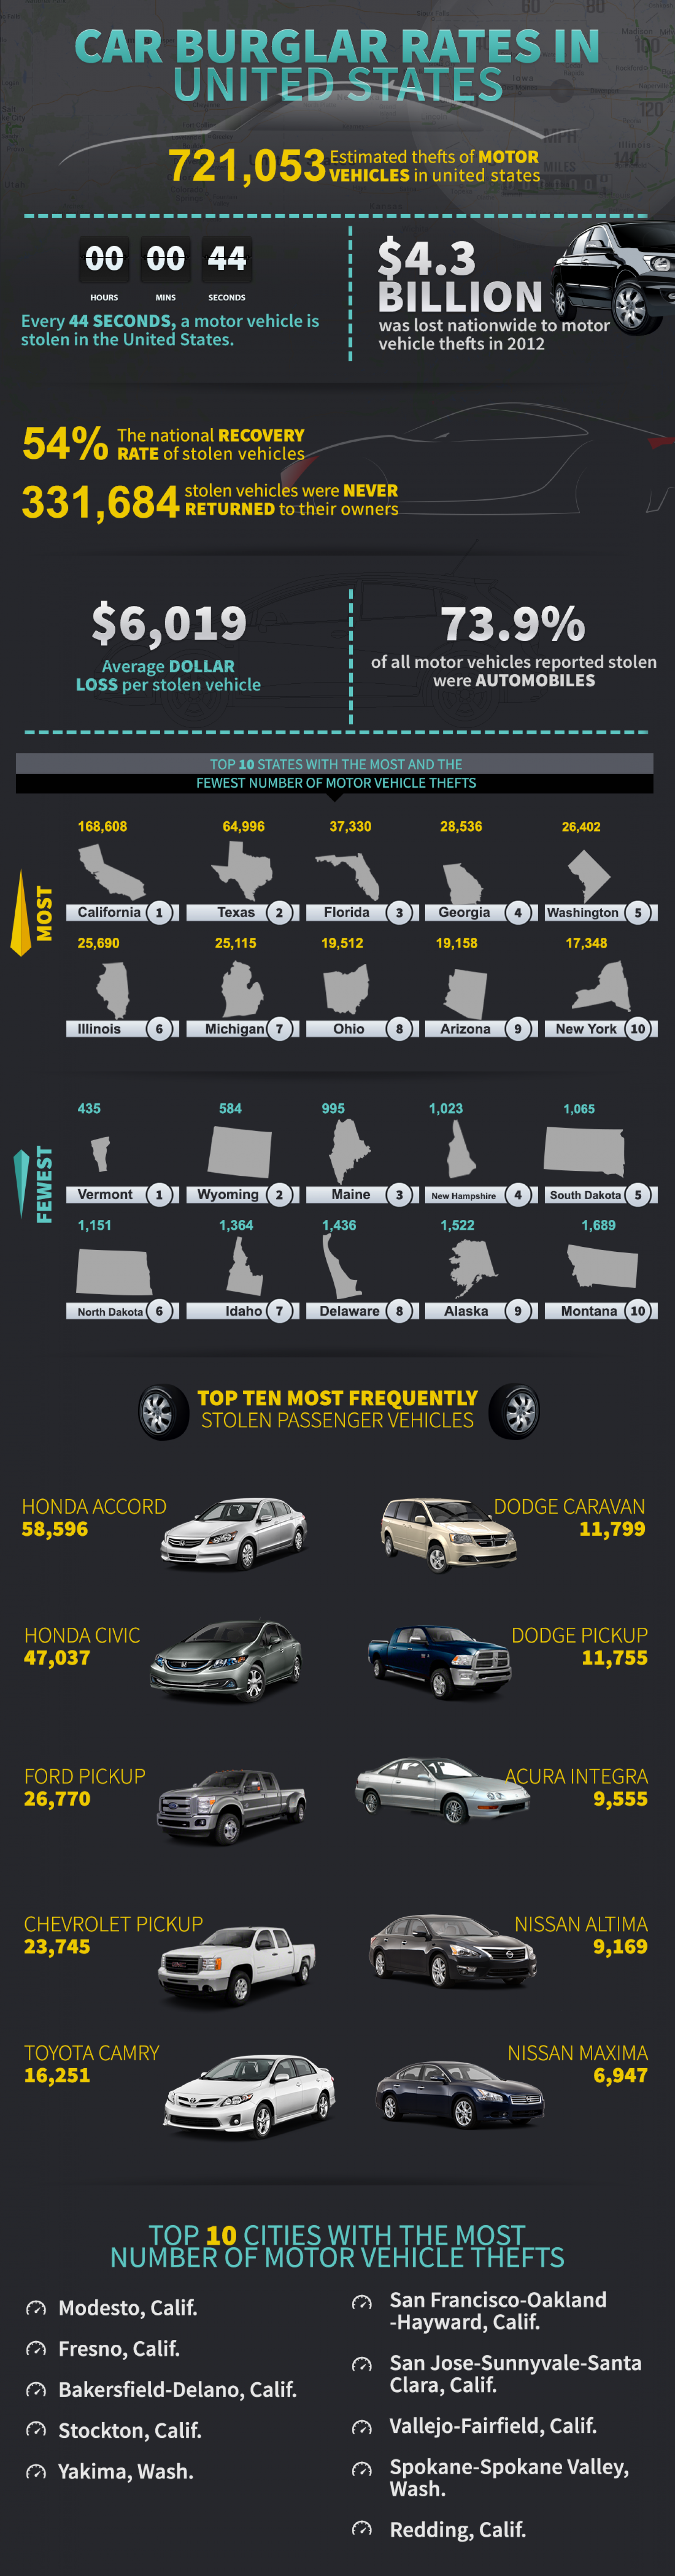 Car Burglar Rates in United States Infographic